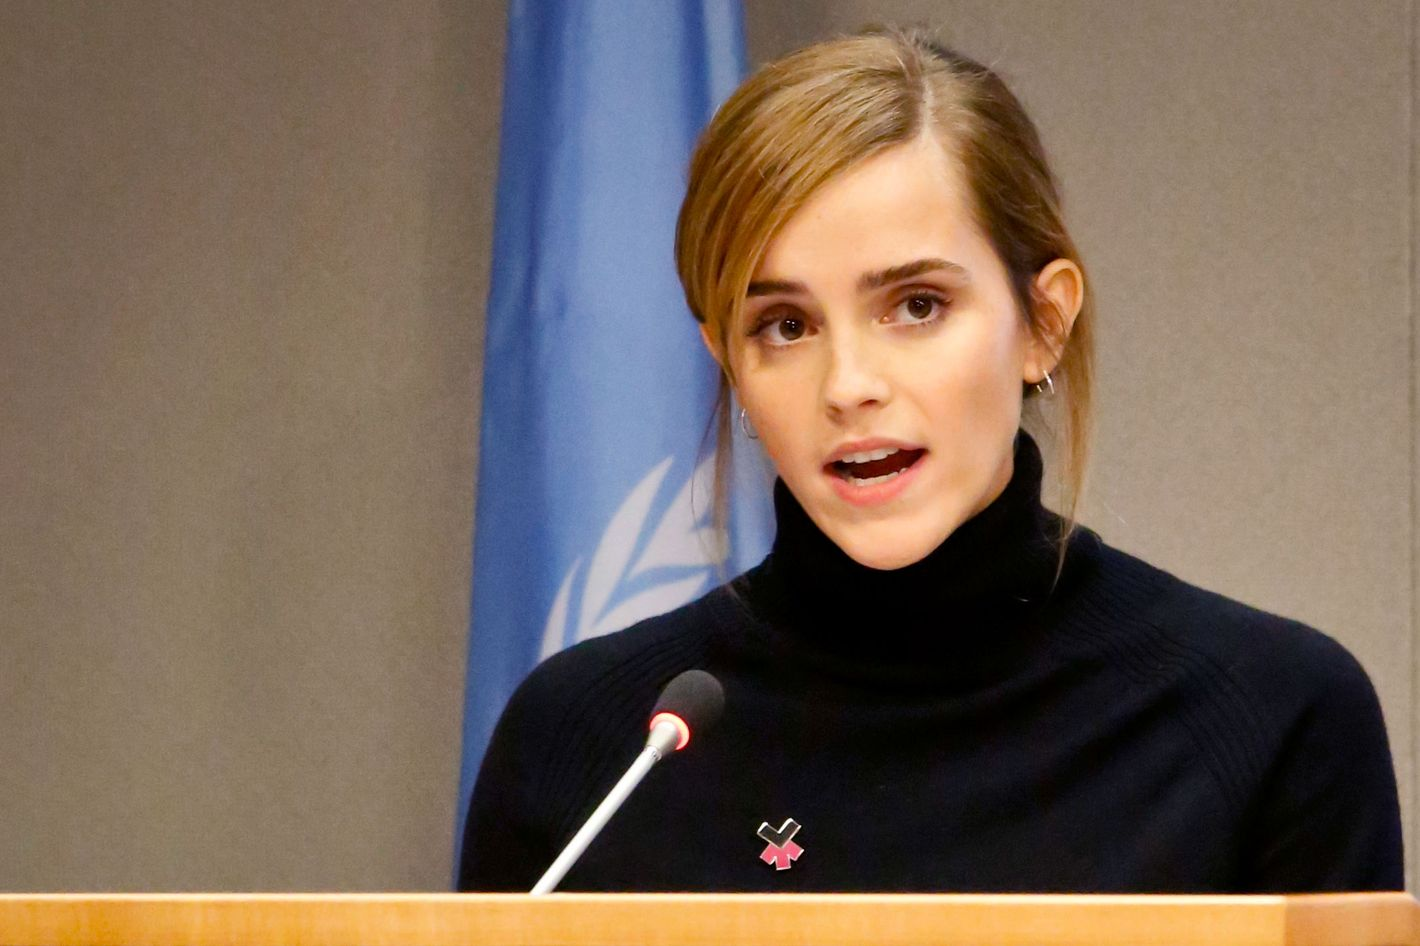 Emma Watson And HeForShe Commit To Ending Sexual Assault On College Campuses